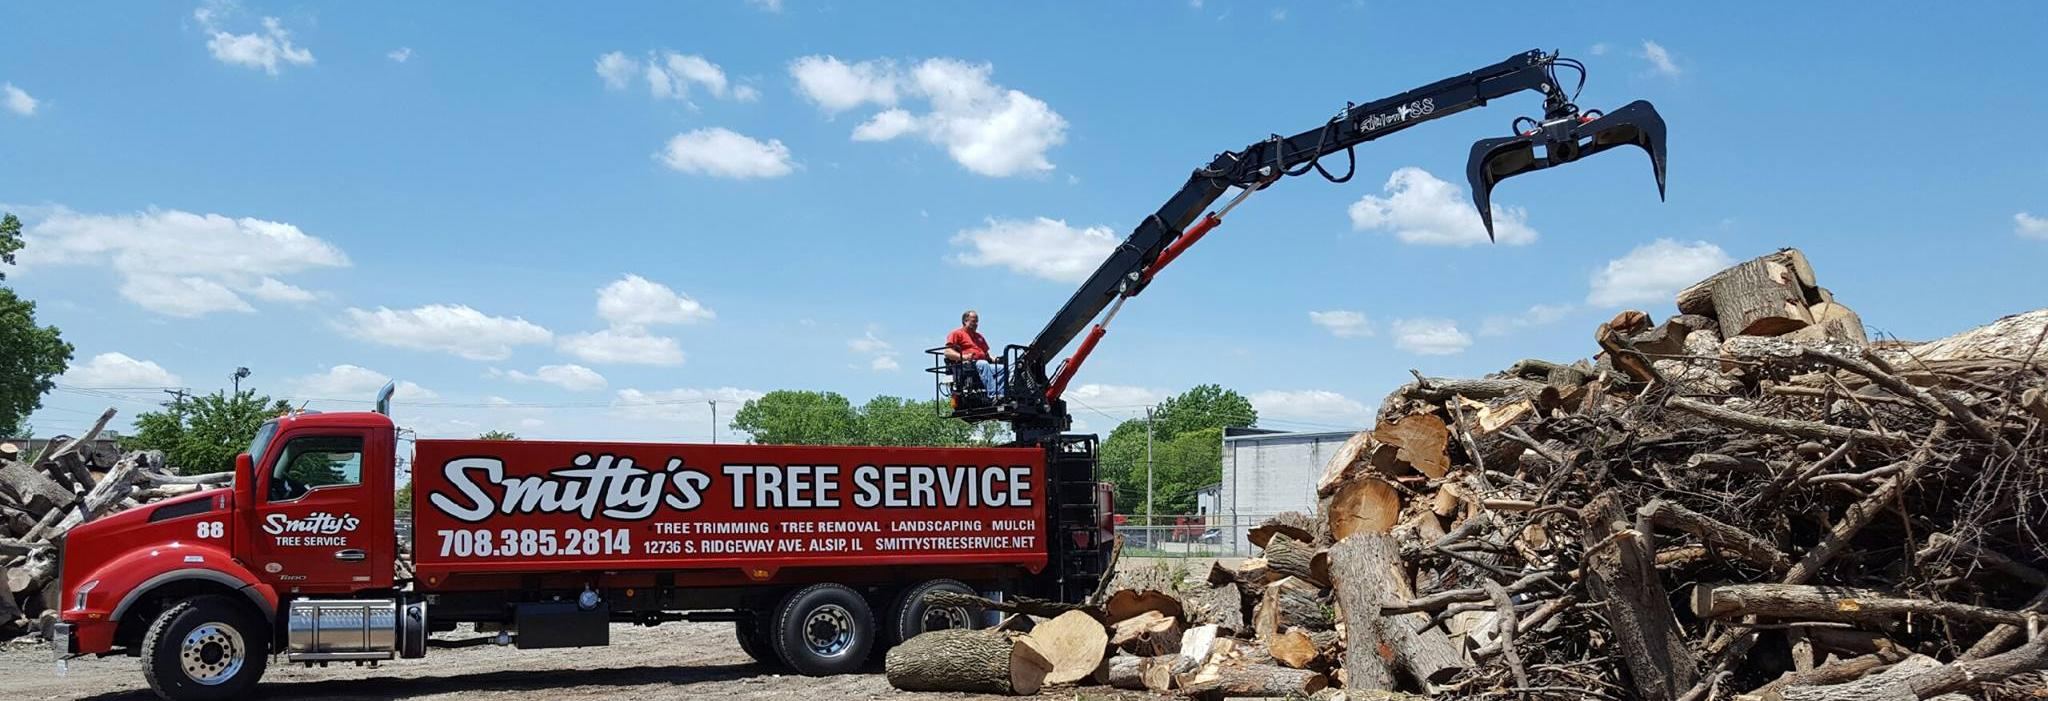 Smittys's Tree Service,family owned and operated serving Chicagoland for over 60 years.